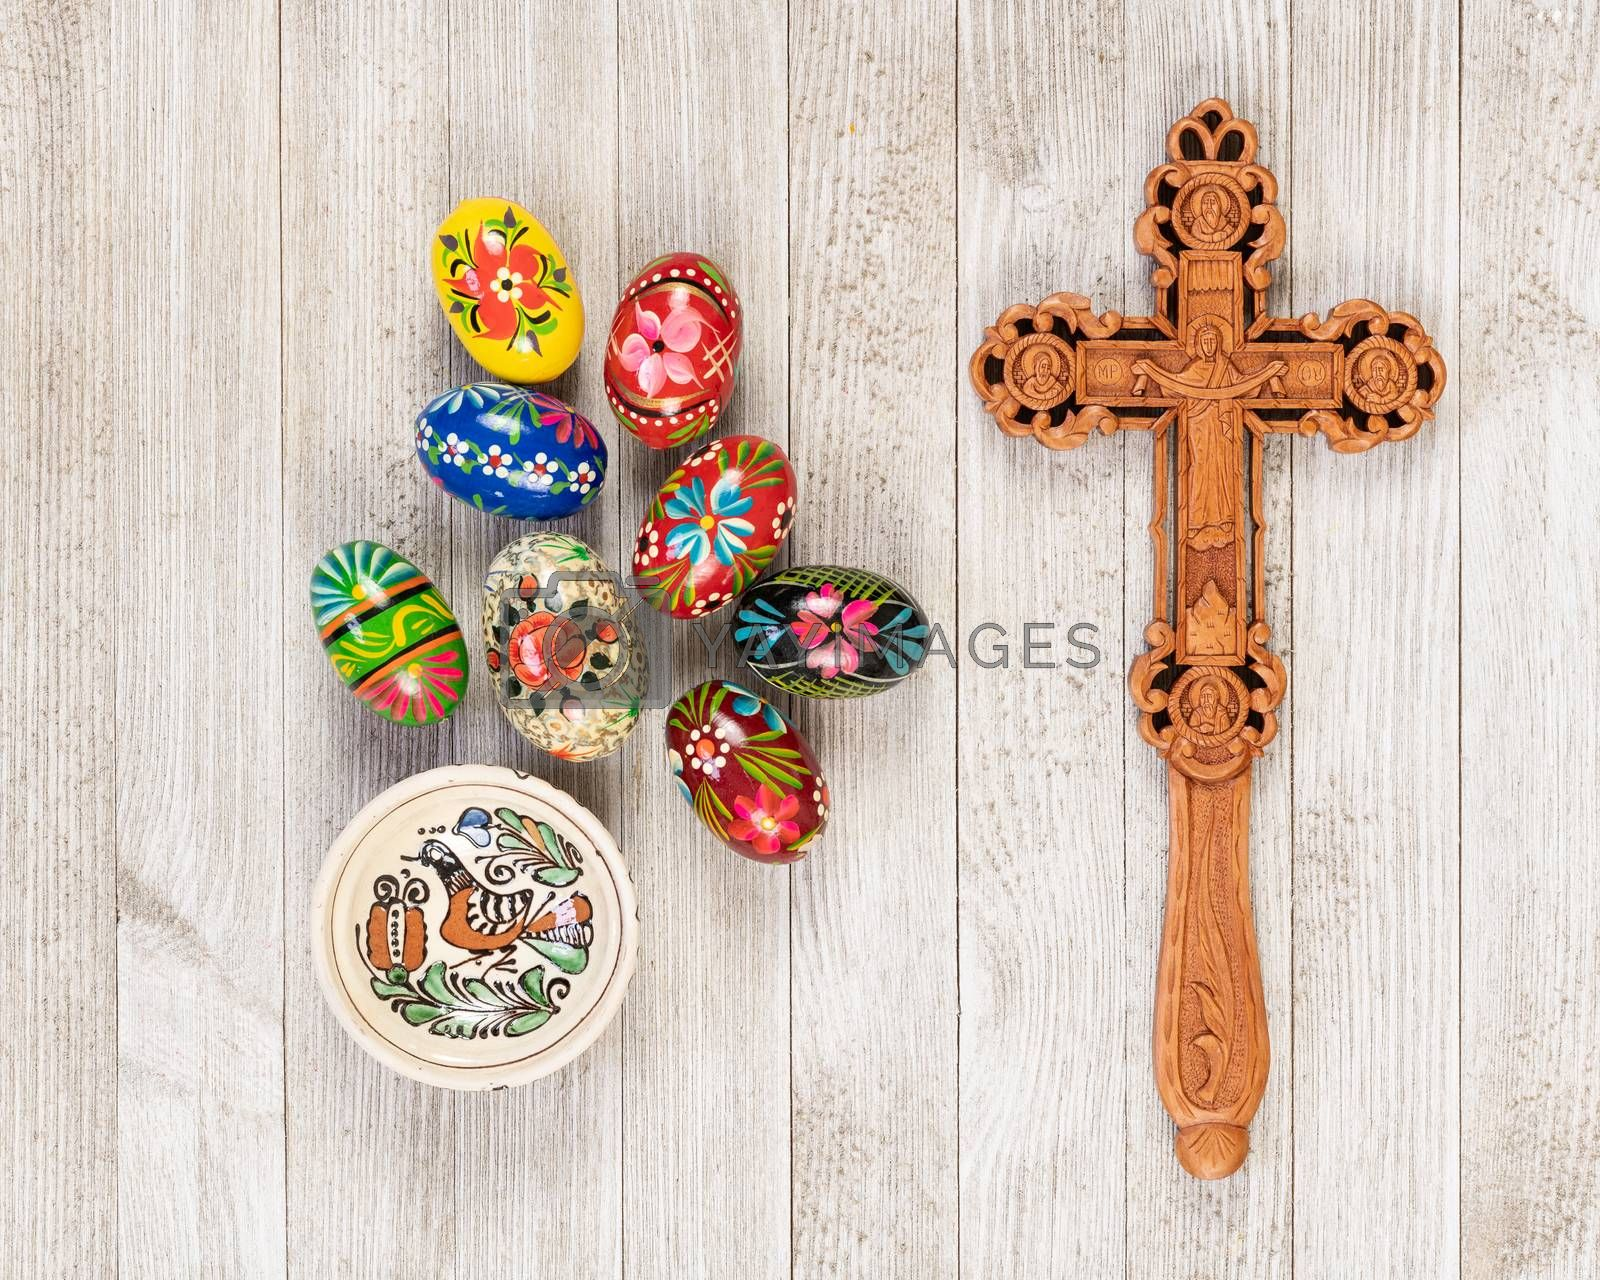 Painted wooden eggs traditional of Eastern Europe with delicately sculpted wooden cross.